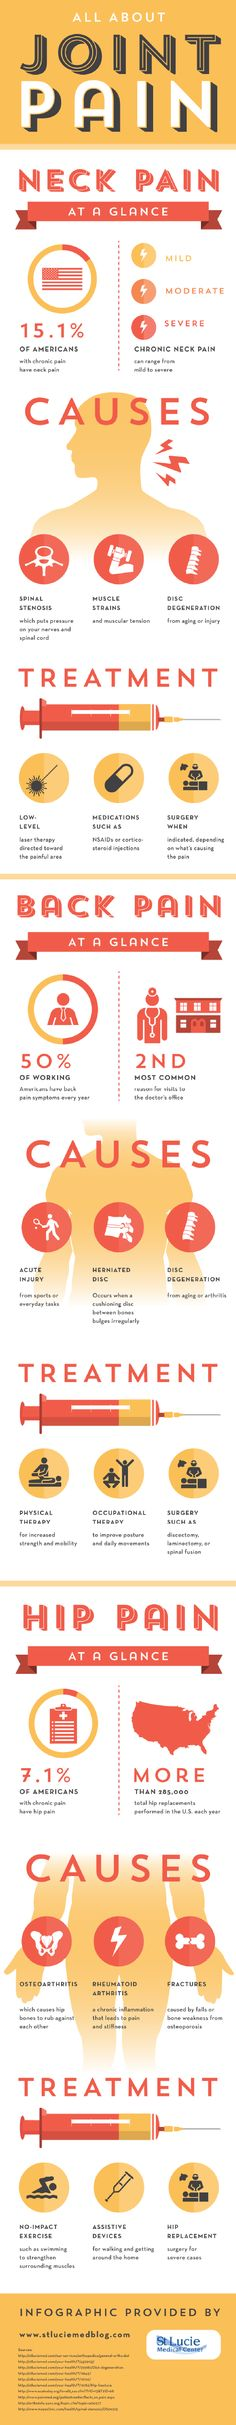 Neck pain affects around 15.1% of Americans who suffer from chronic pain. This sensation can range from mild to severe depending on a variety of factors. Learn more about neck pain and other types of joint pain in this arthritis relief infographic.